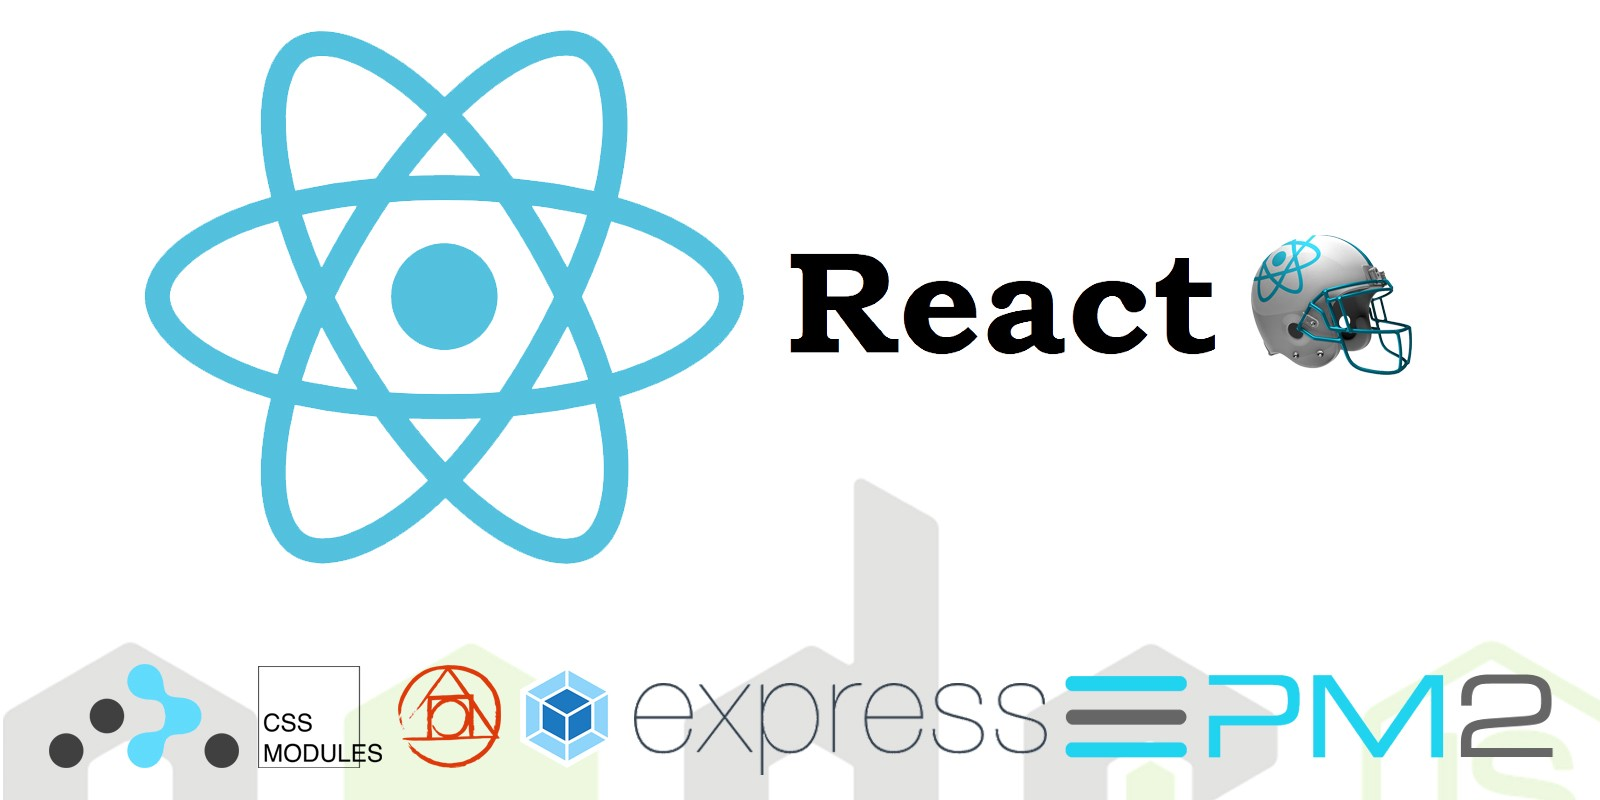 Web Application implementation based on React js, Complete